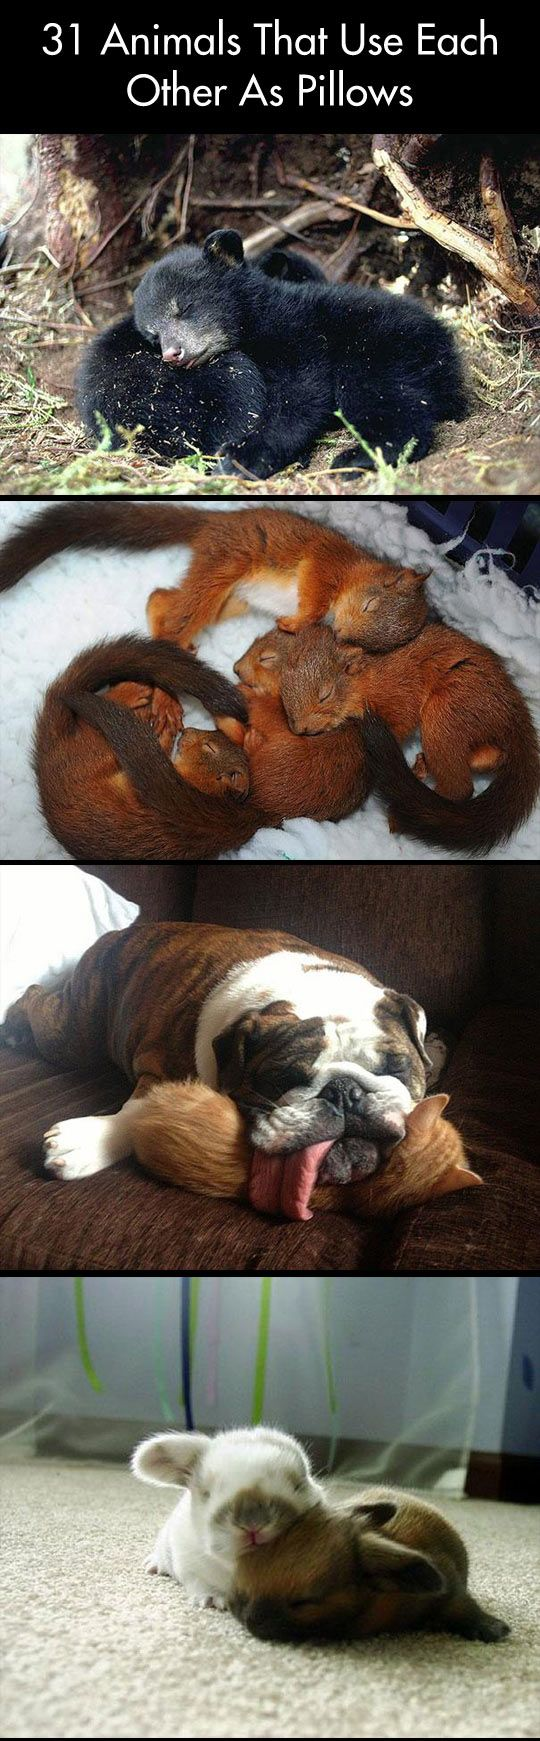 Pictures of animals that use each other as pillows…